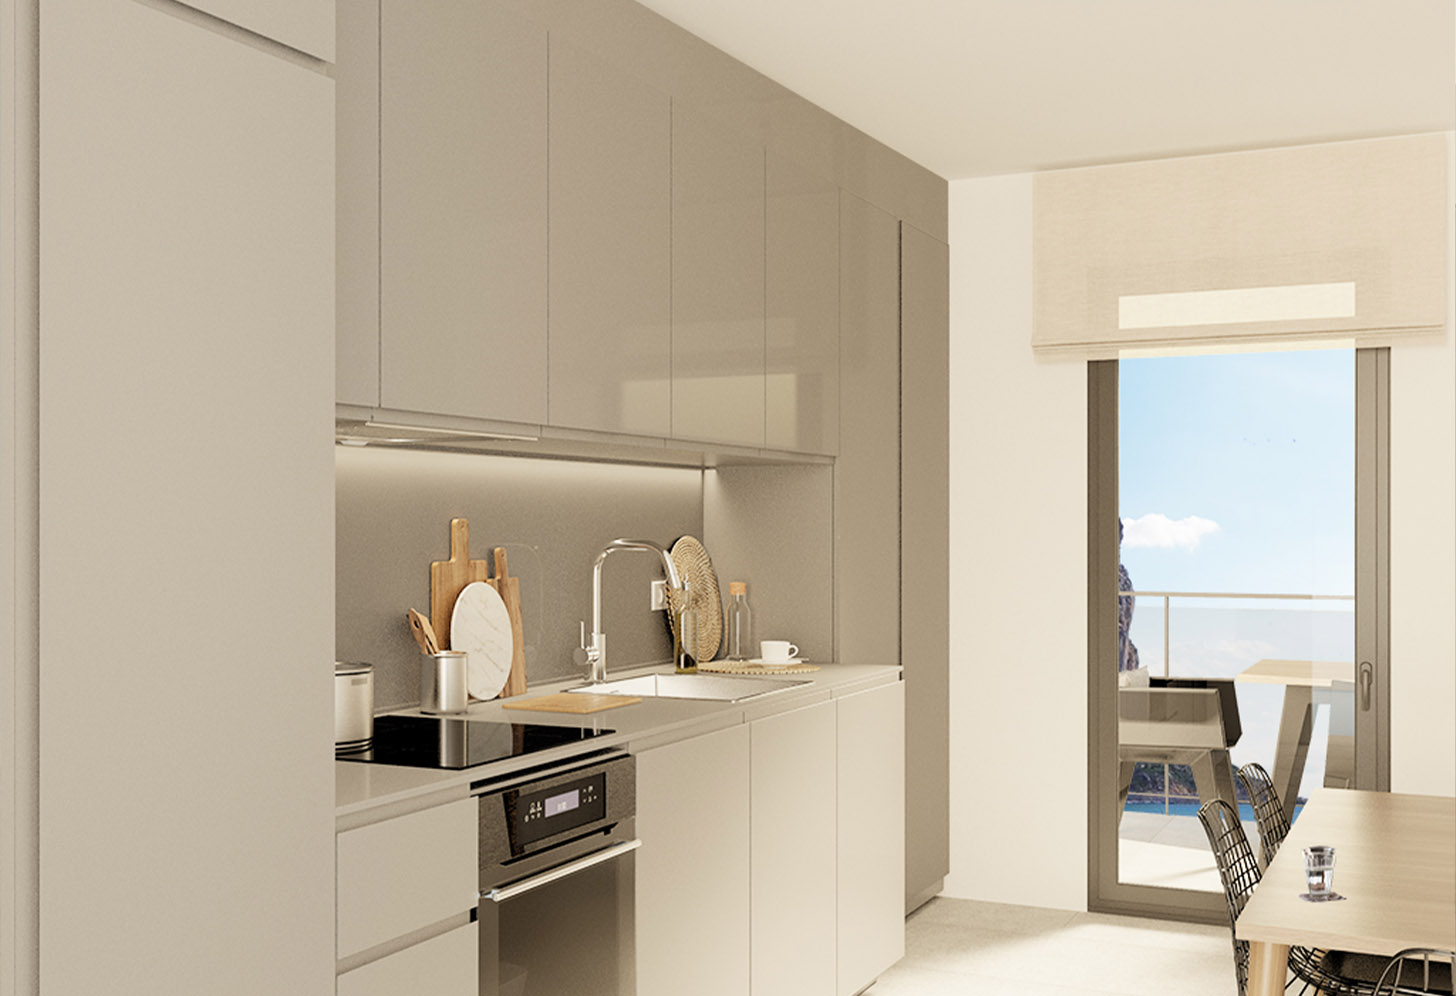 immobilier neuf espagne costa blanca nord on-h1 sunrise tower cuisine